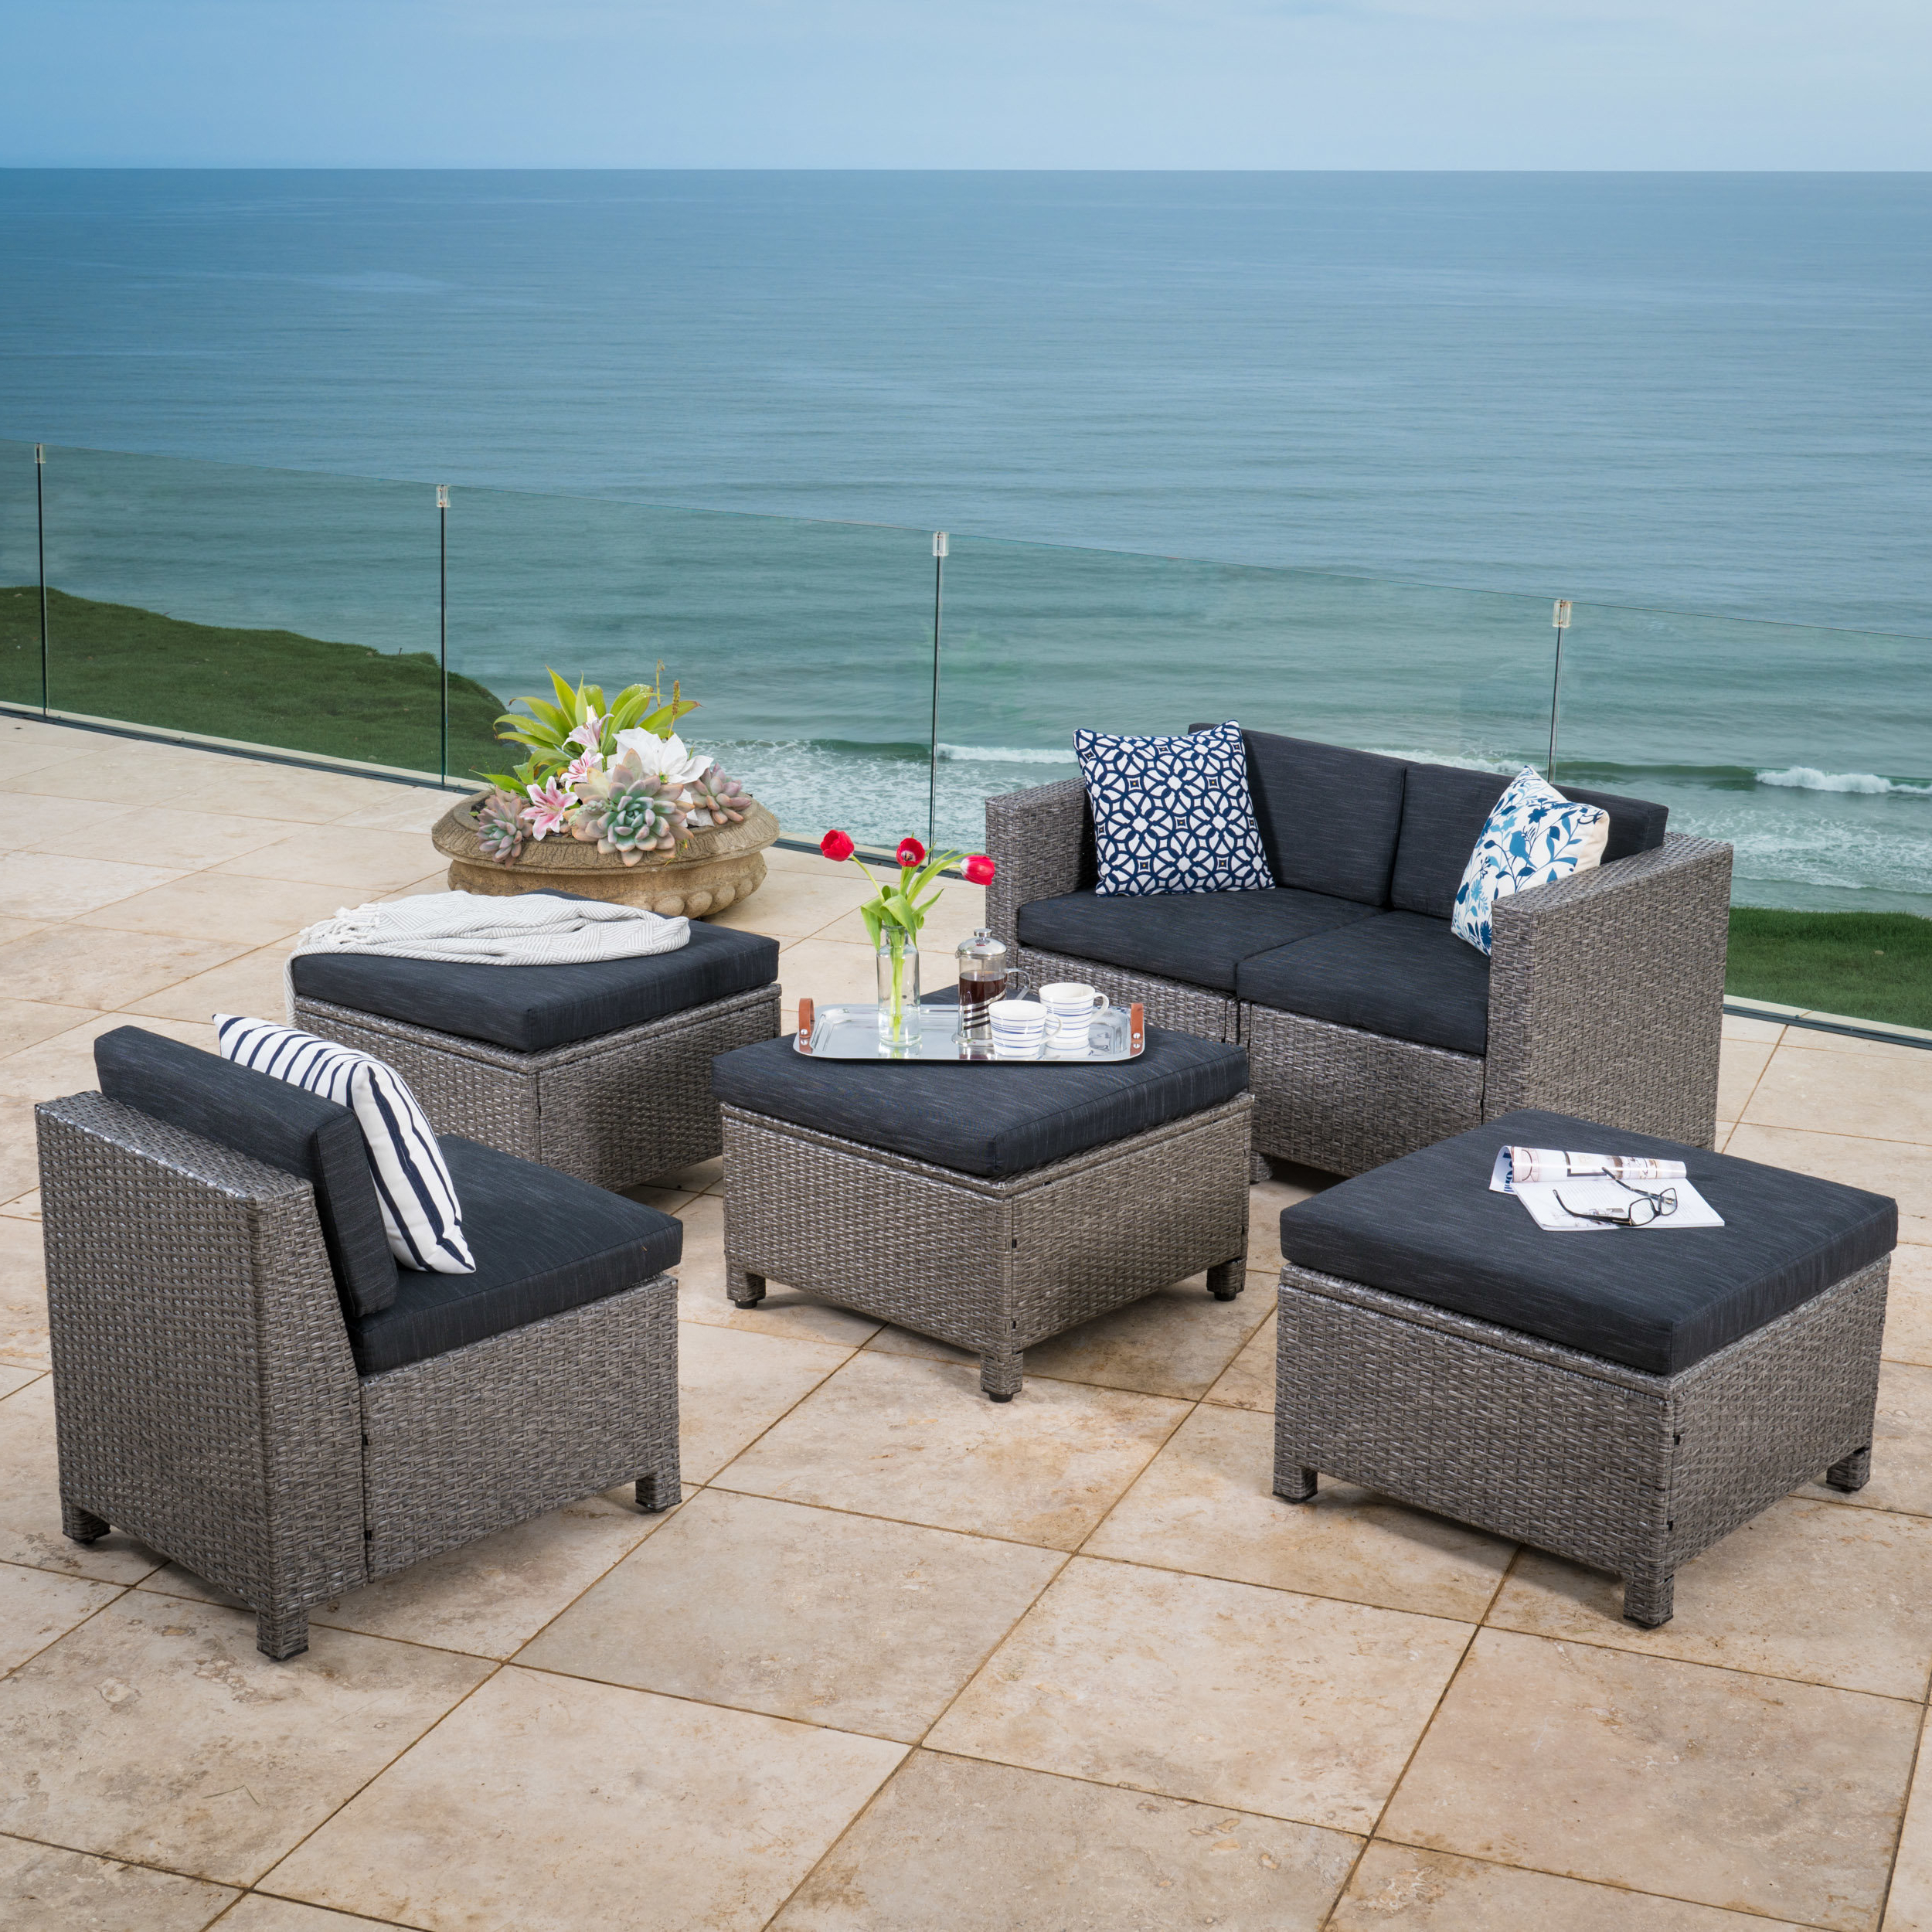 Furst Patio Sofas With Cushion Within 2019 Furst 6 Piece Sofa Set With Cushions (View 20 of 20)